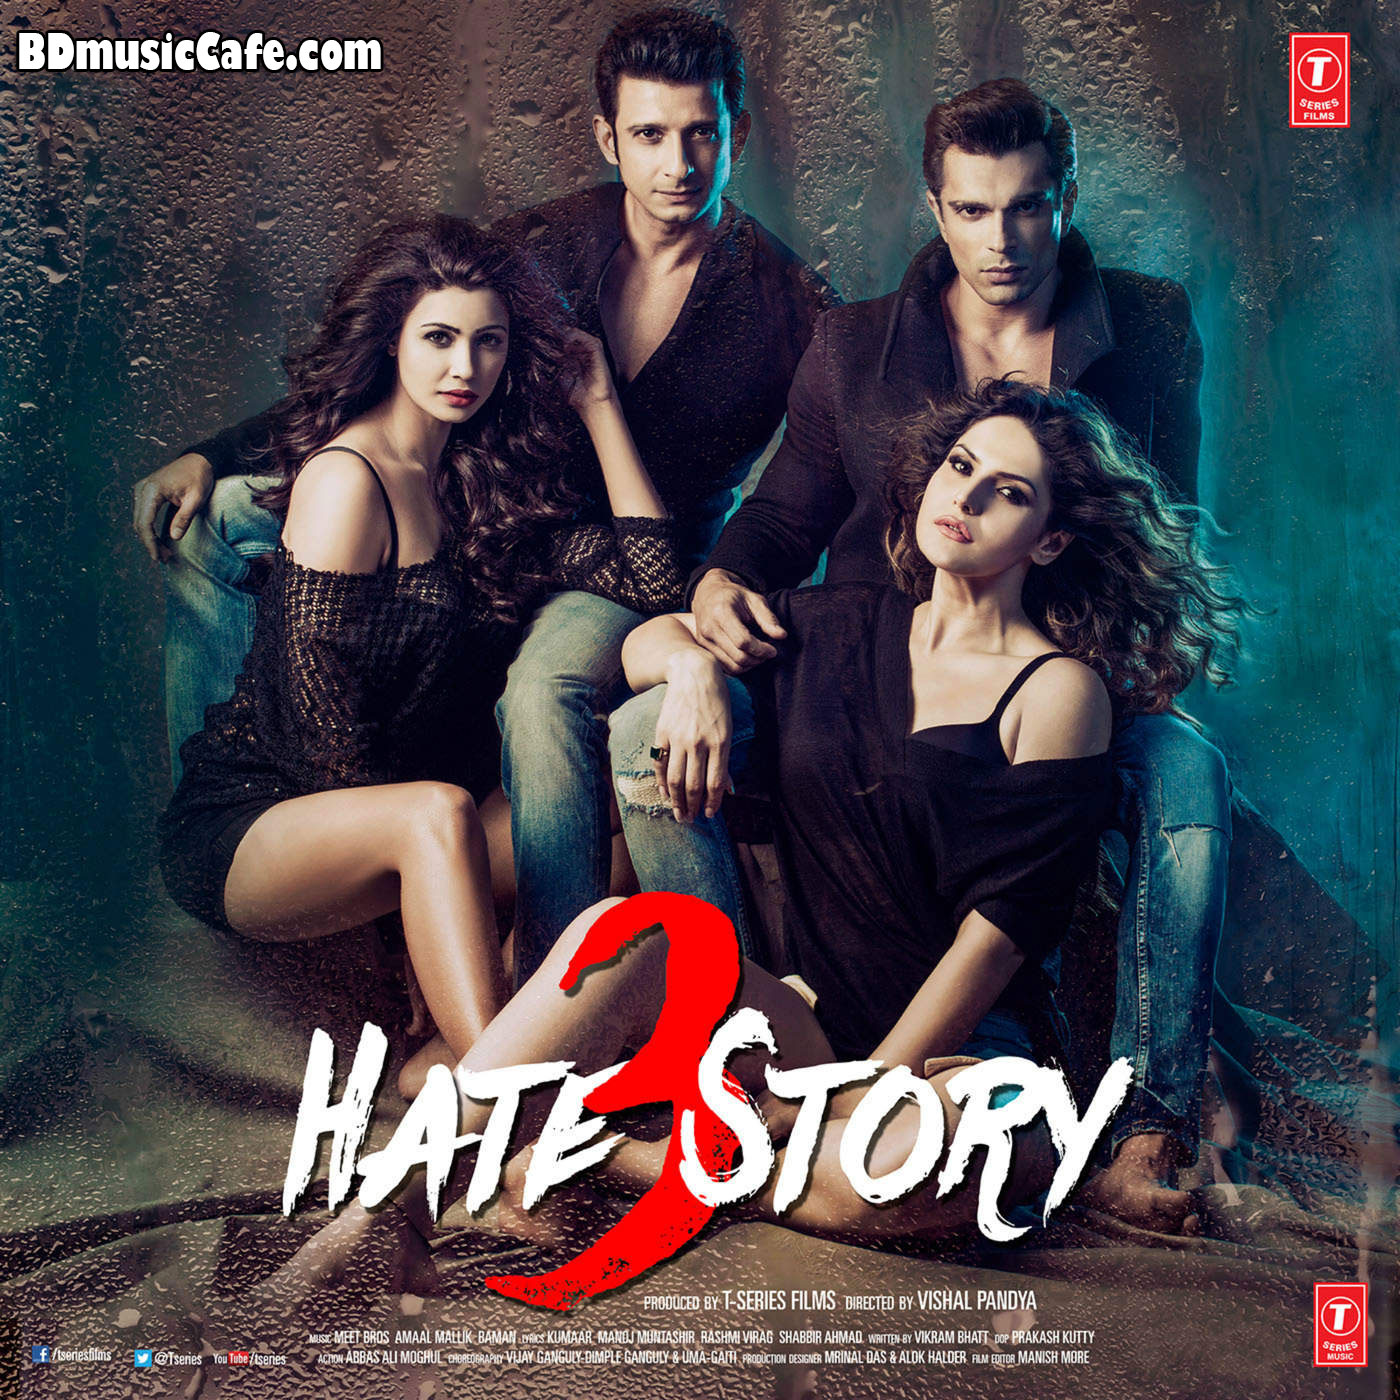 hate story 3 2015 bollywood movie mp3 songs download